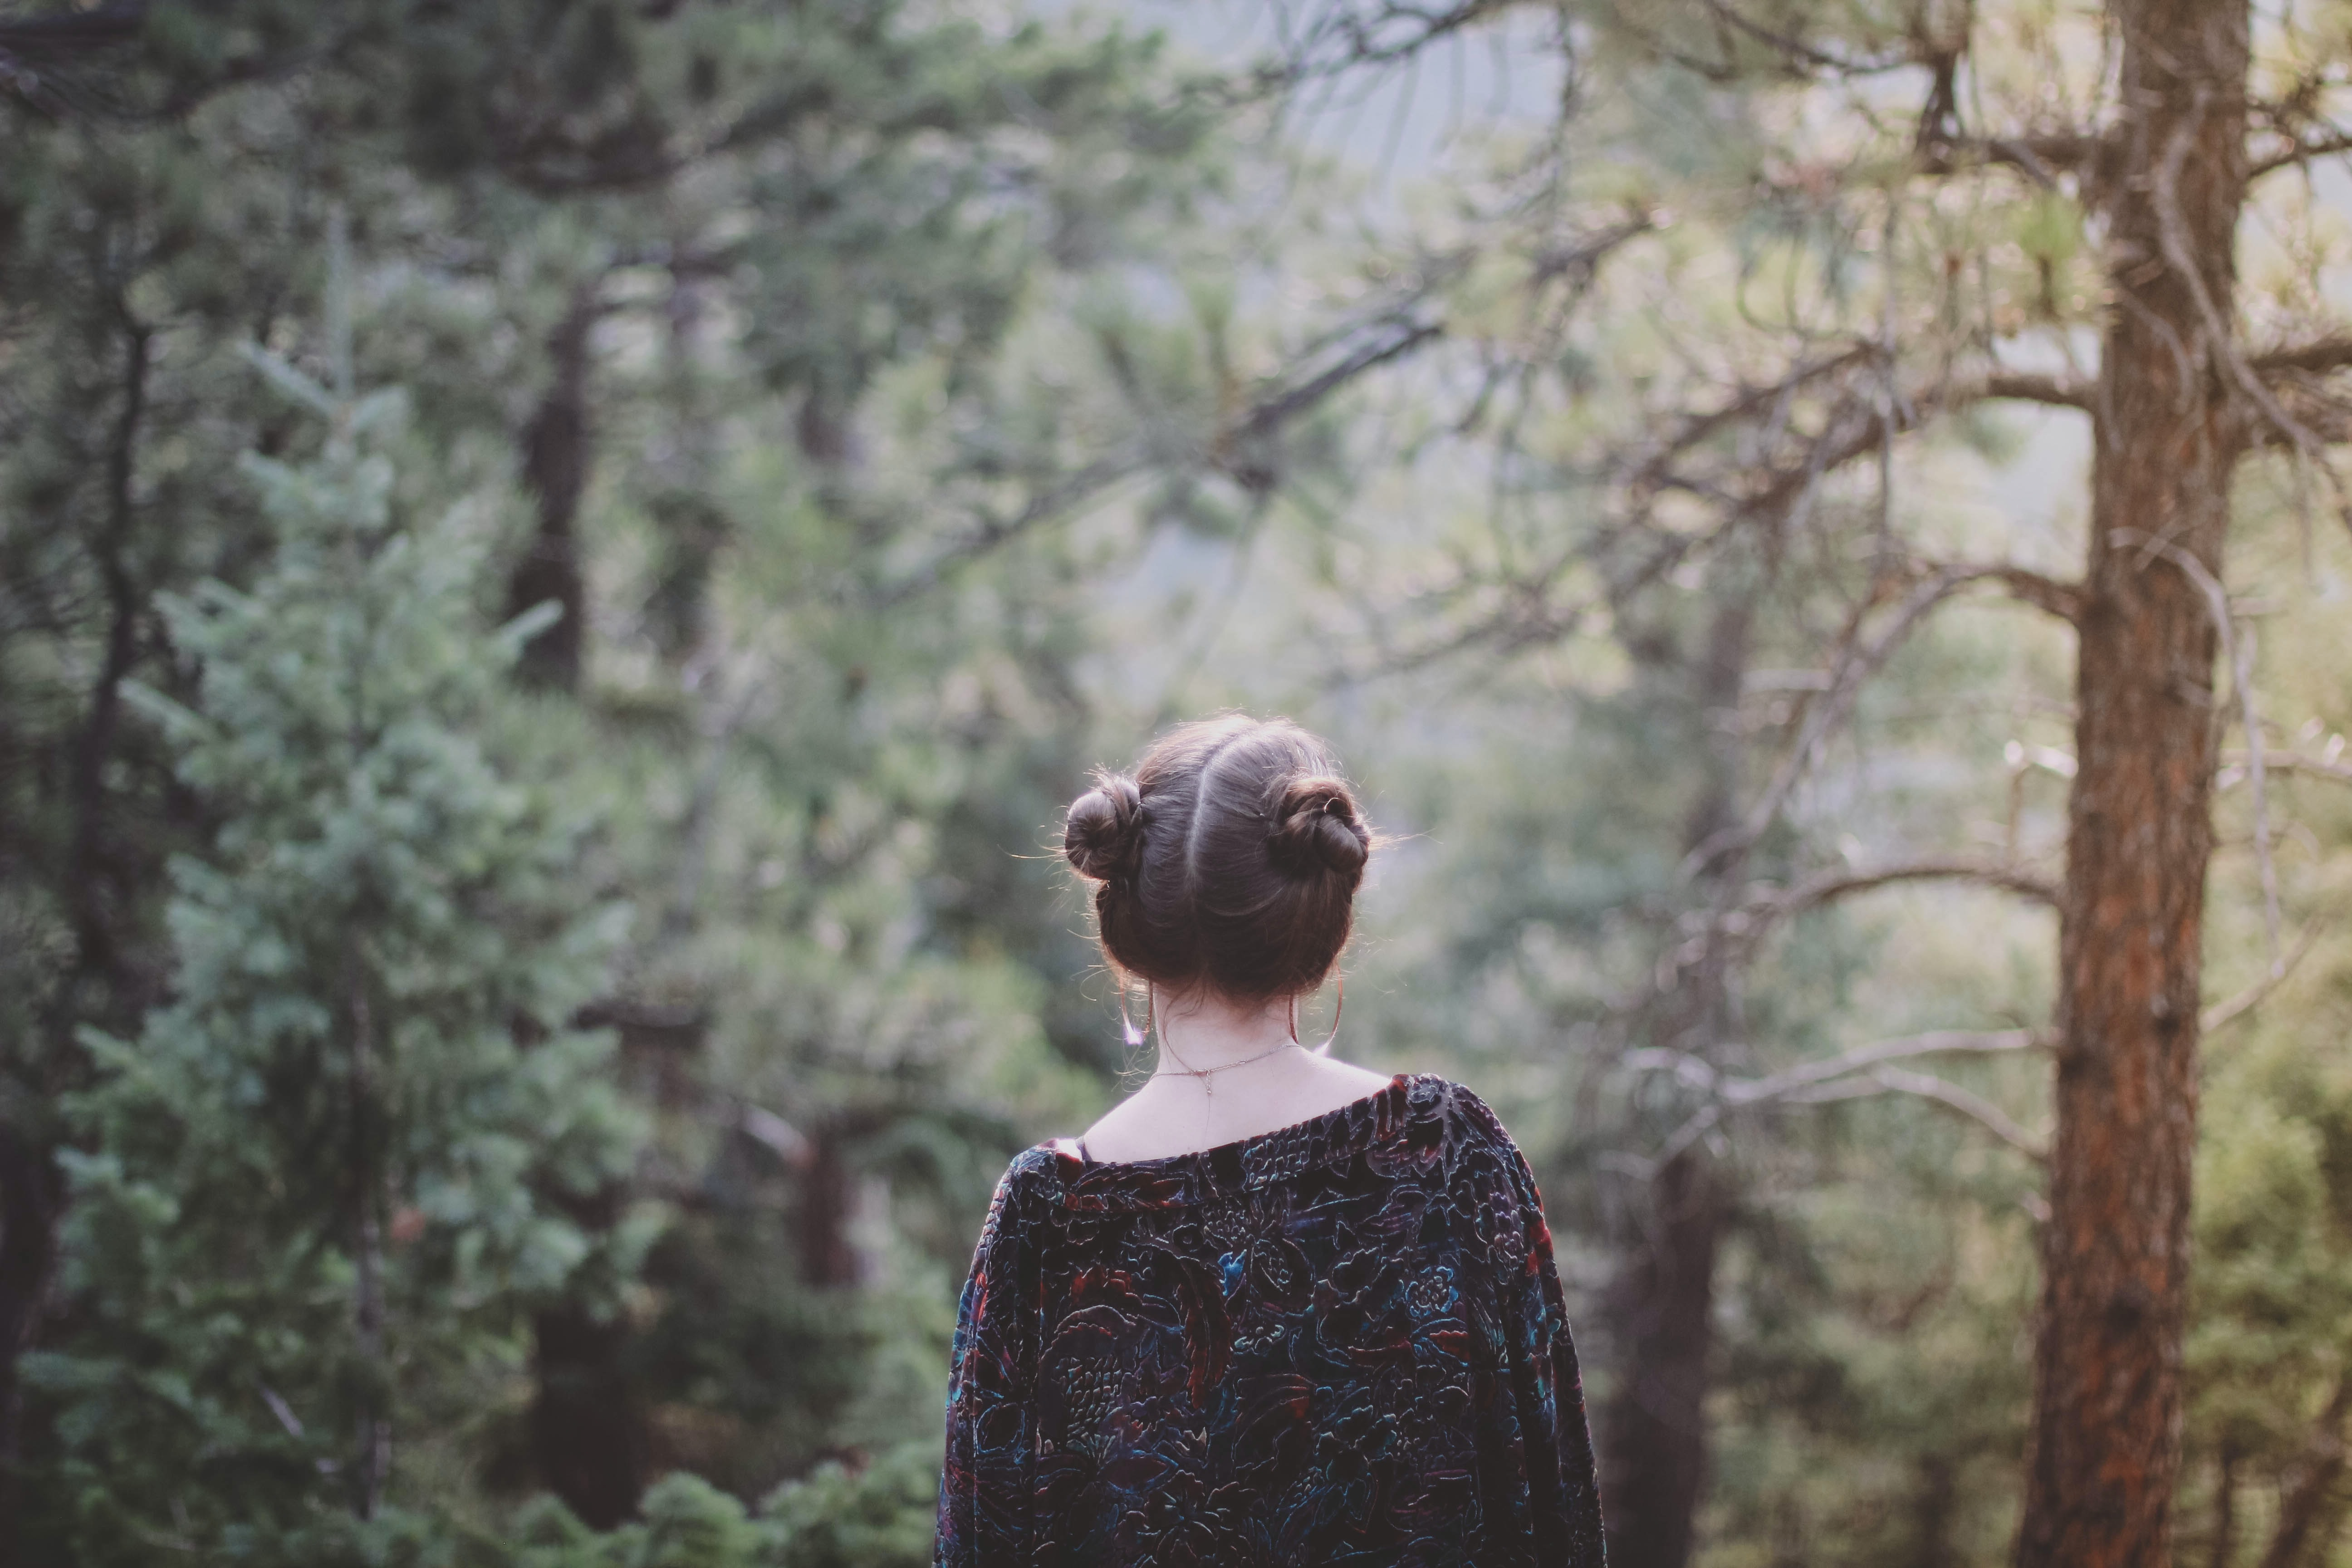 A woman with her hair up in buns walking through an evergreen forest